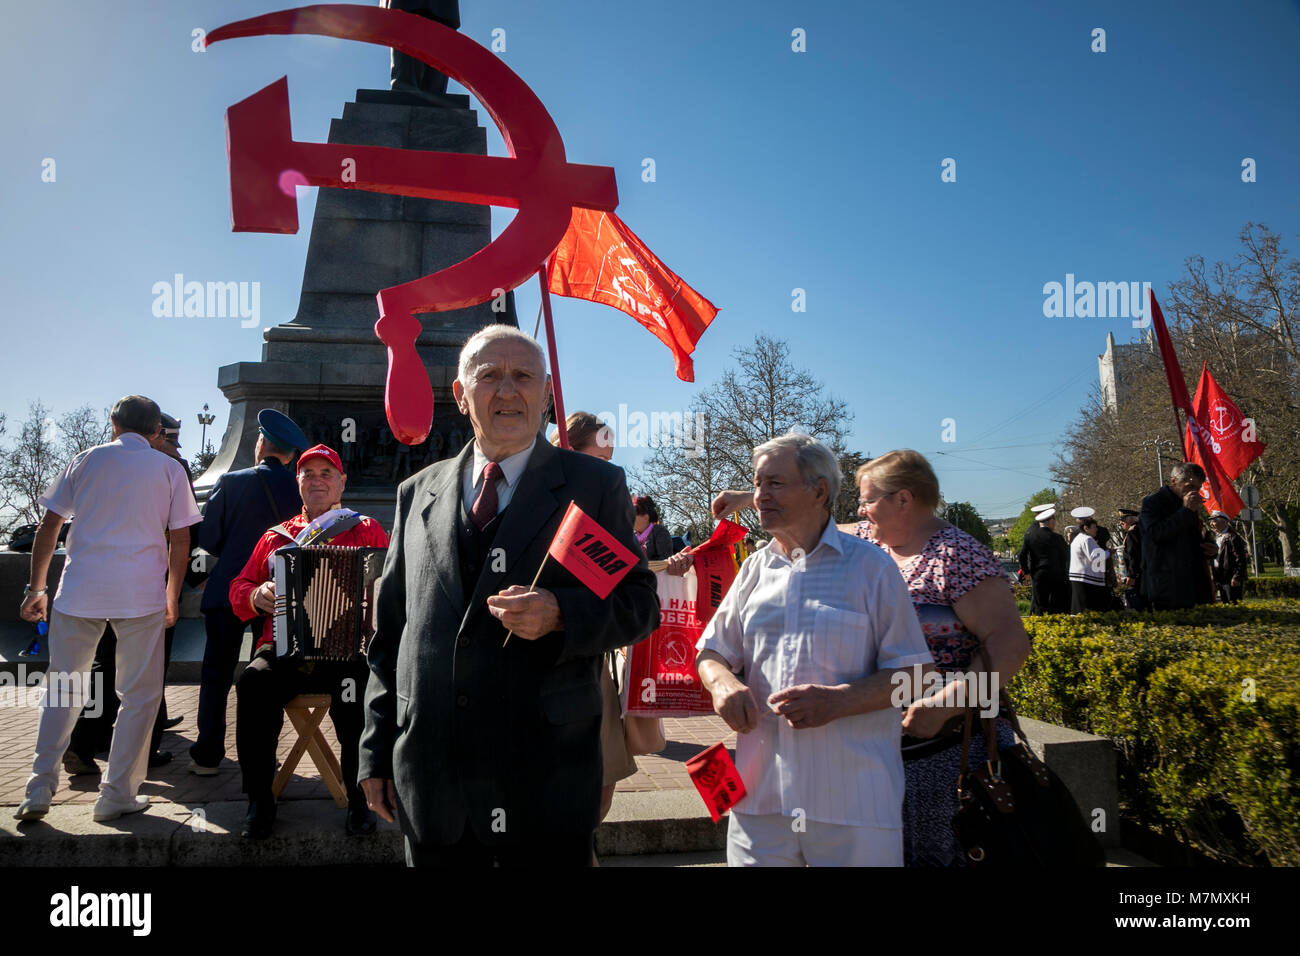 May Day procession of the Communists 99